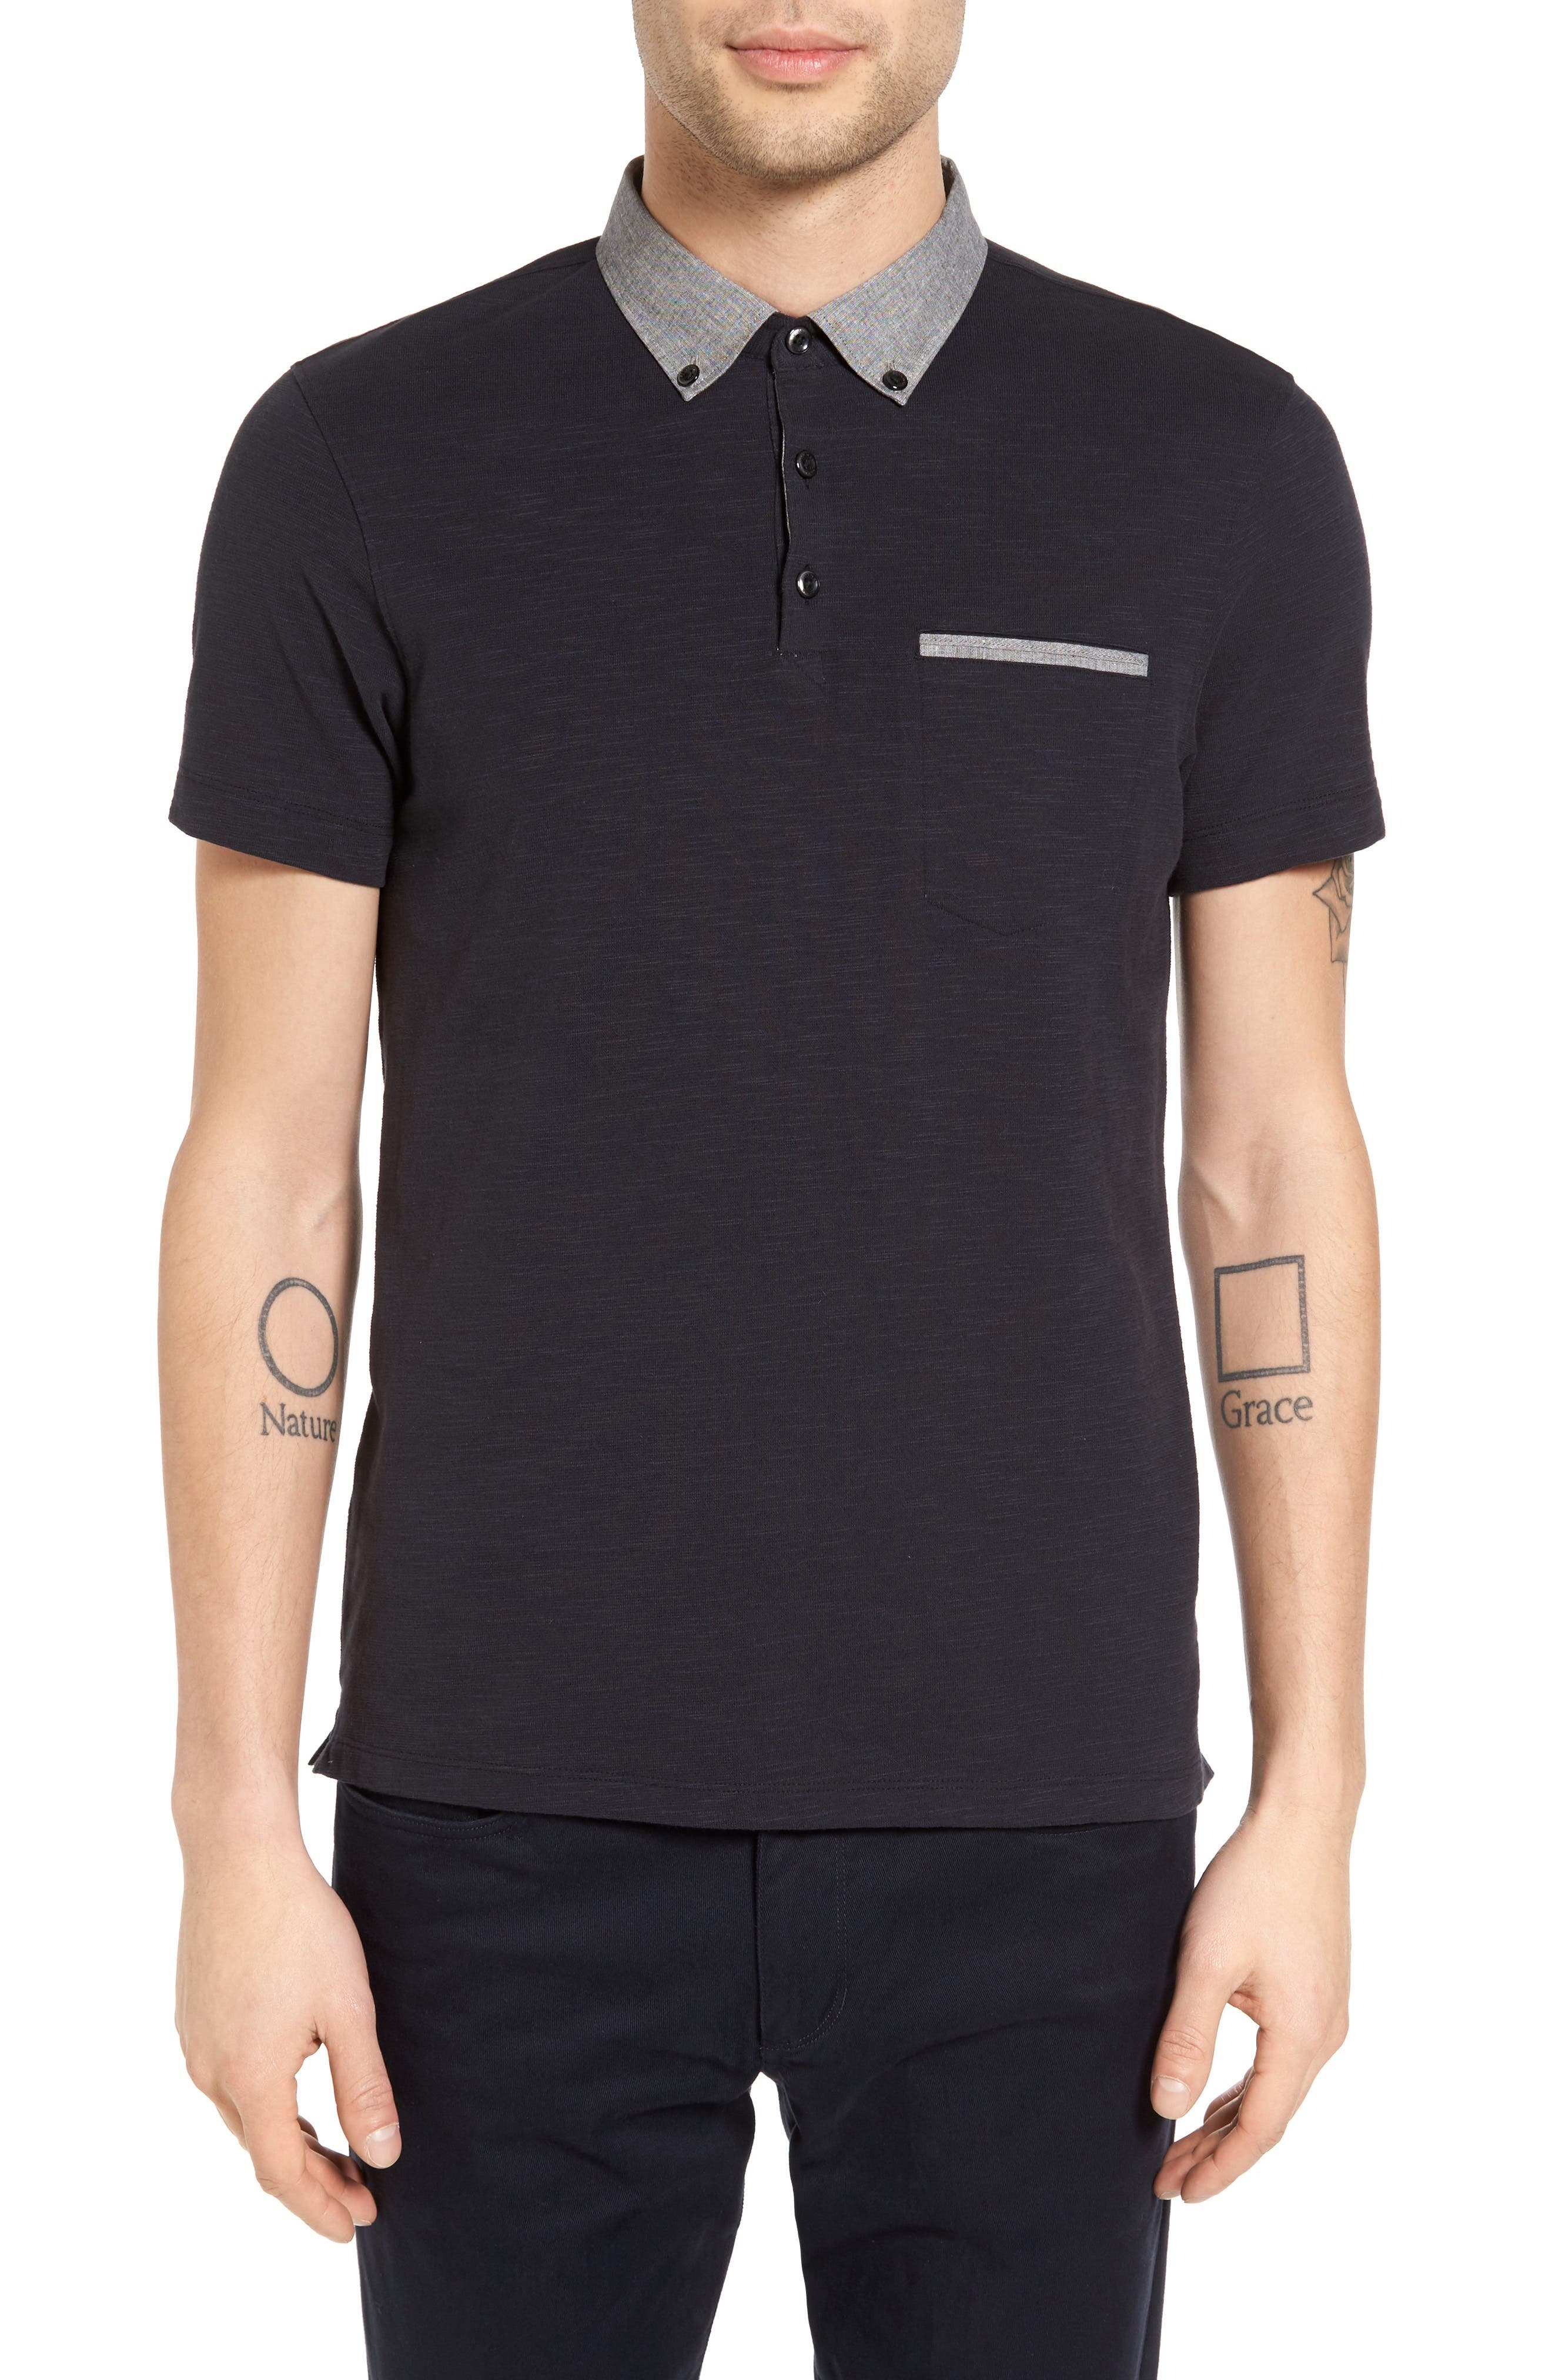 Main Image - Good Man Brand Woven Collar Slub Jersey Polo